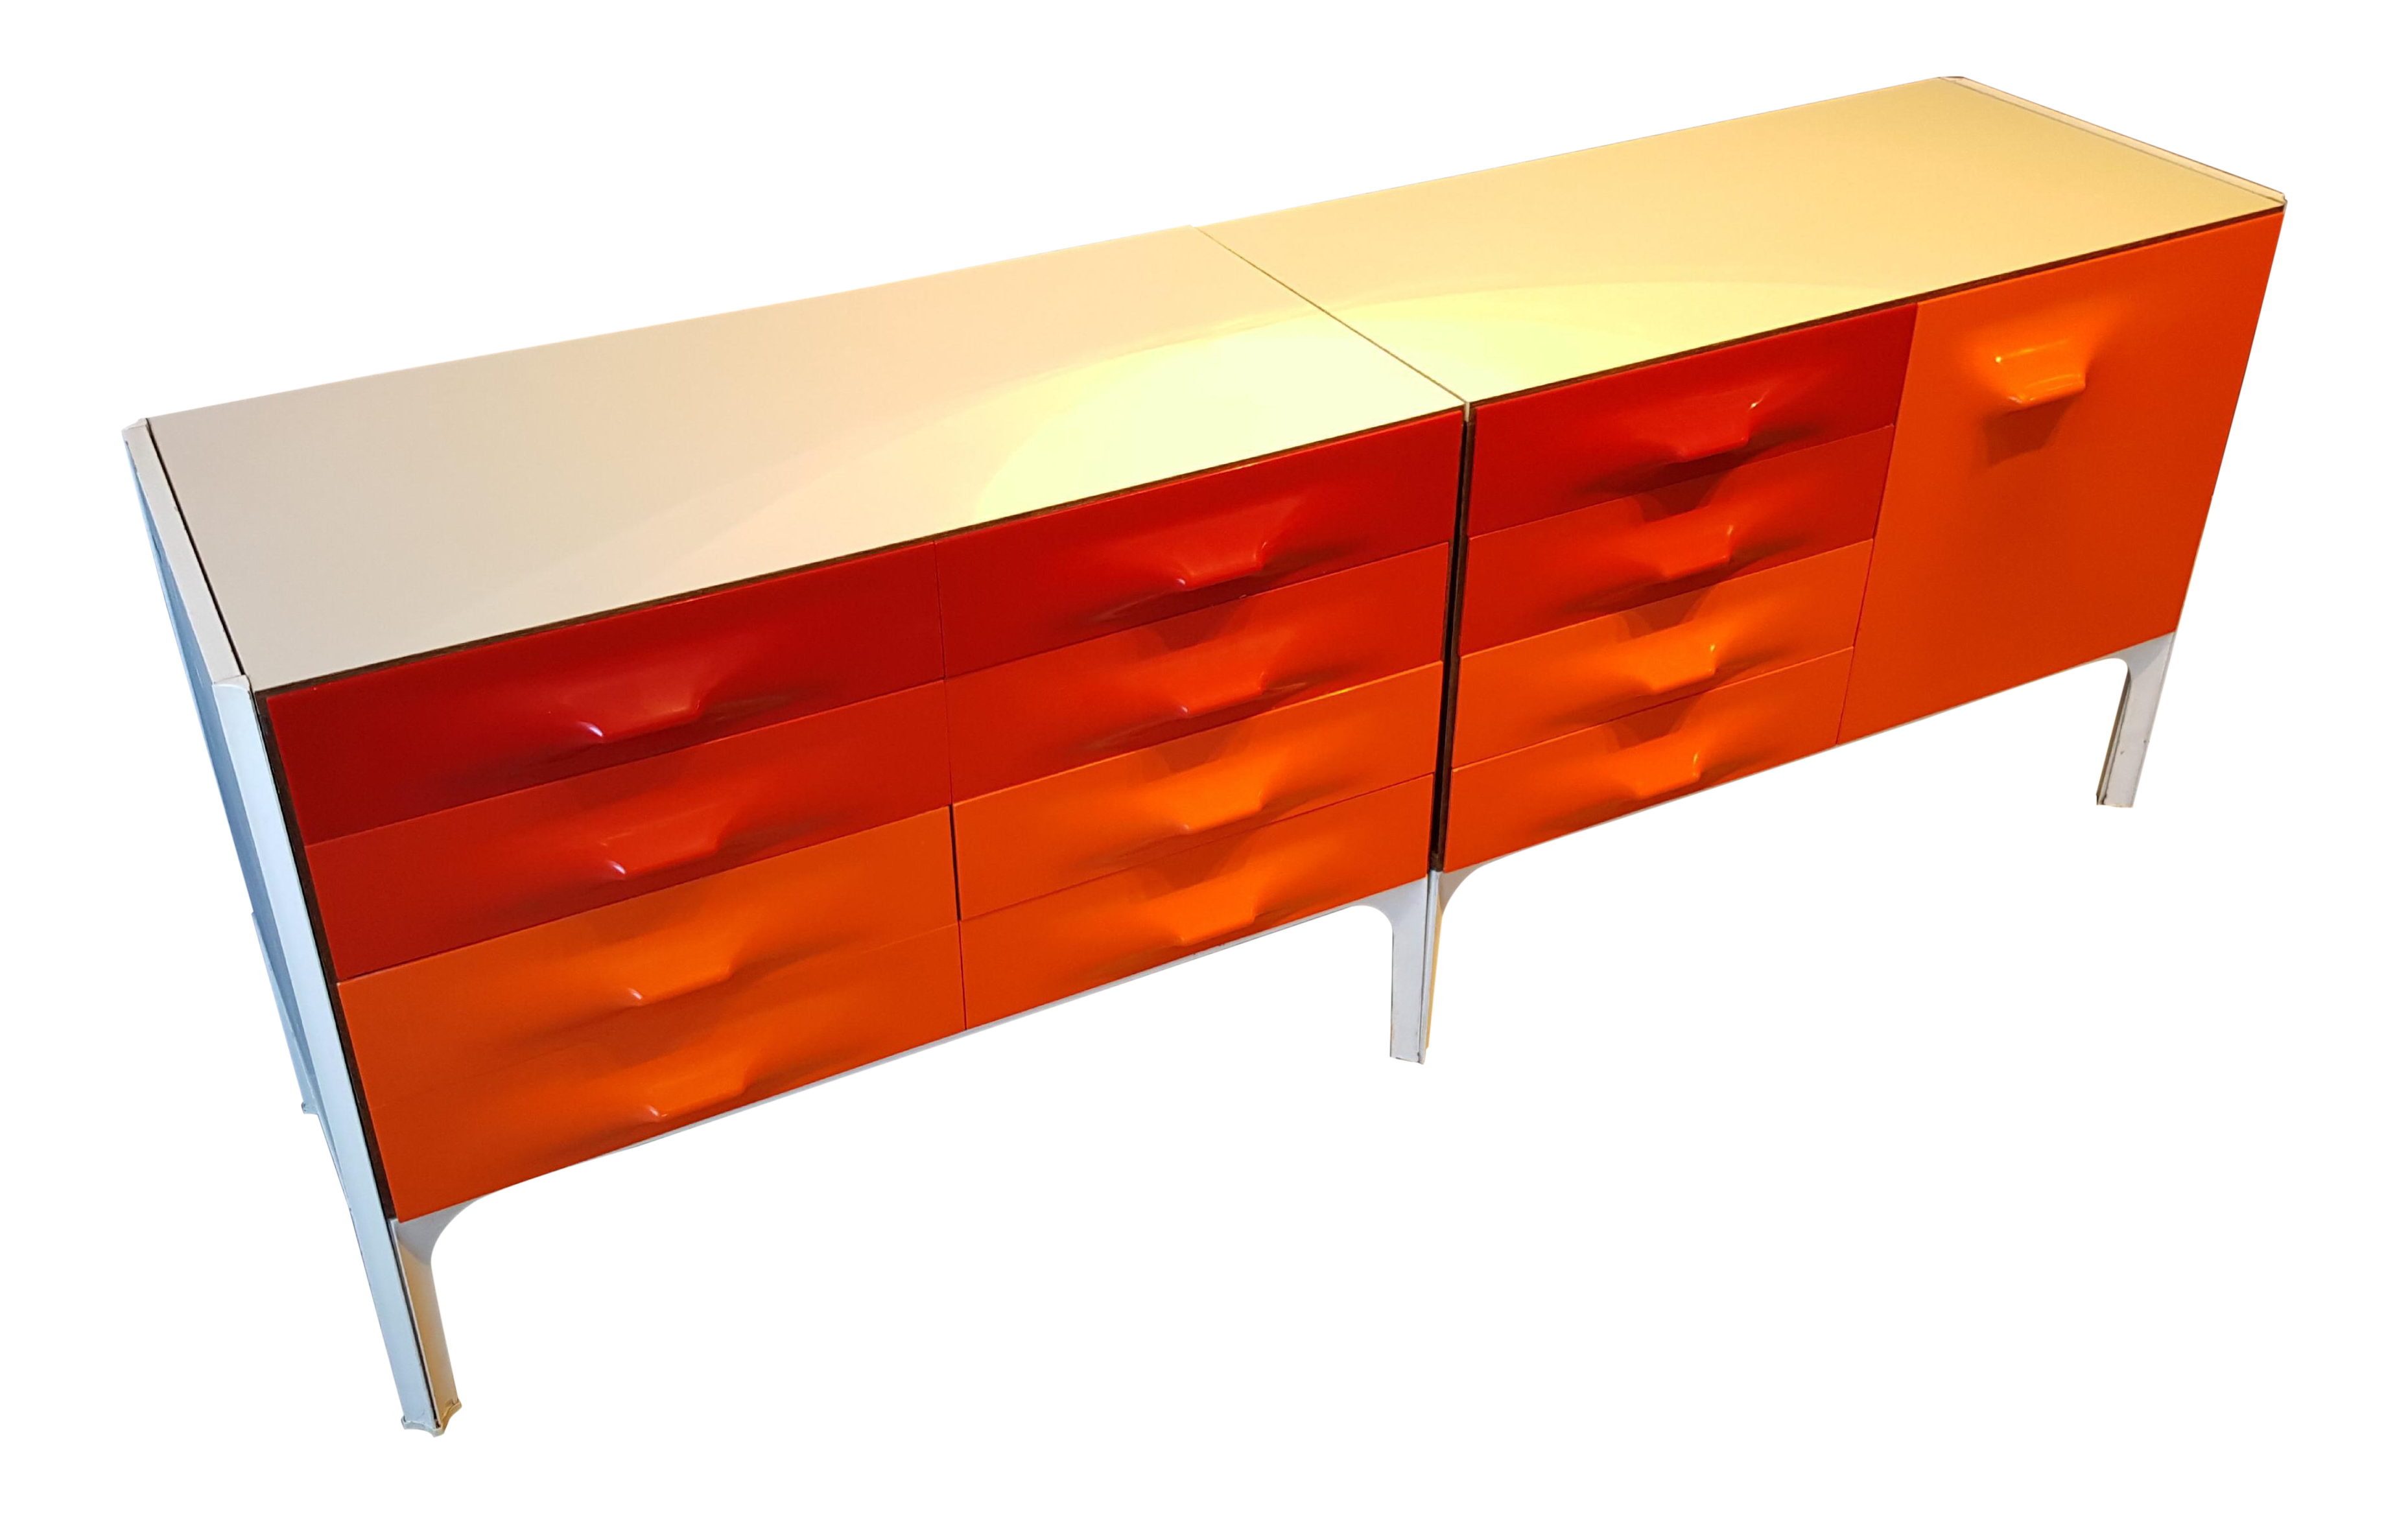 Space Age Raymond Loewy Df 2000 Credenza For Doubinsky Frères, France, Rare